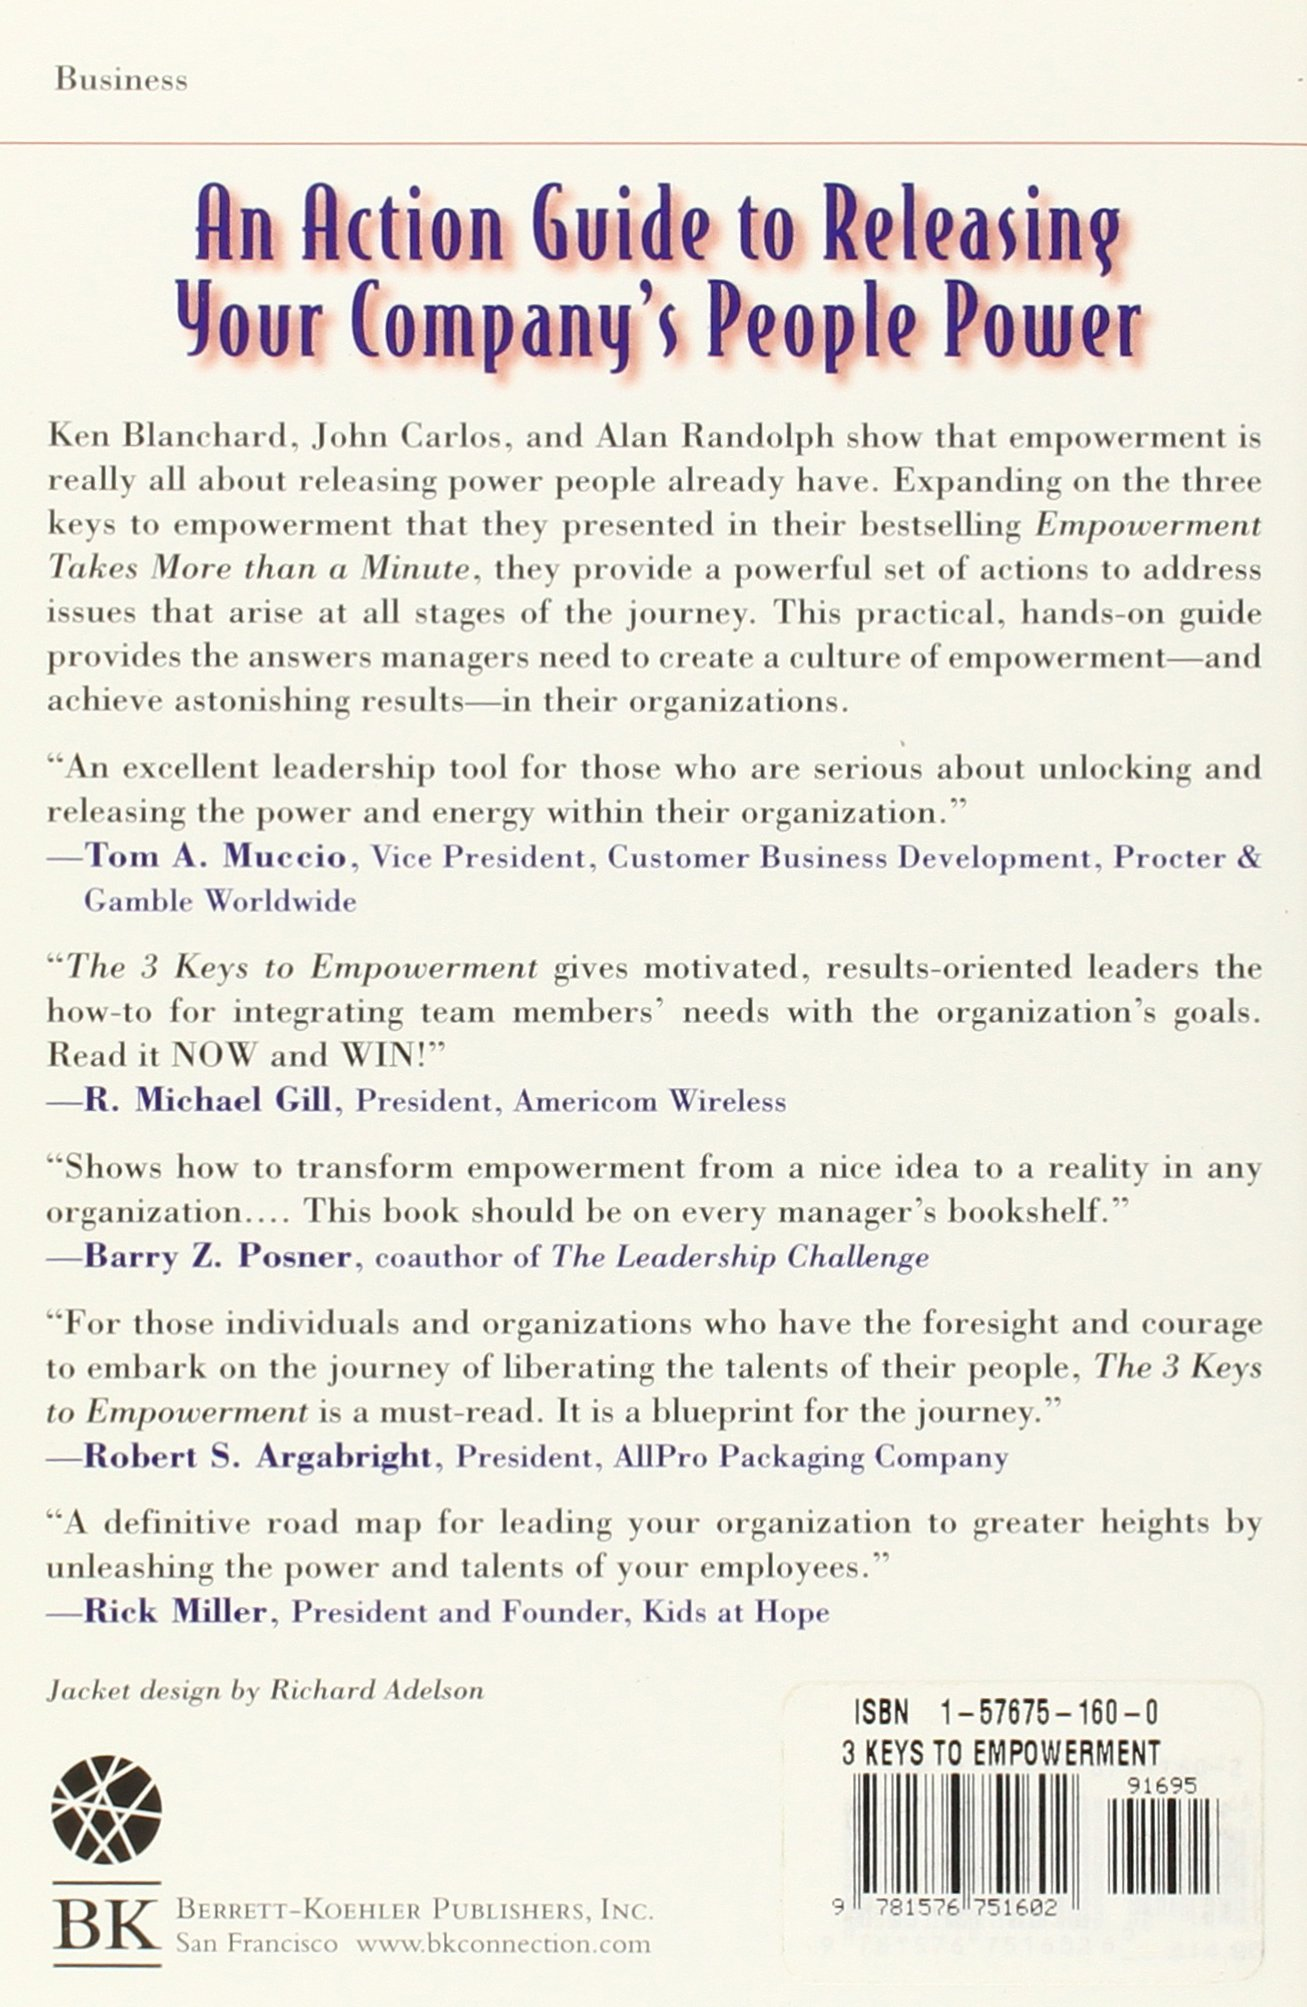 The 3 keys to empowerment release the power within people for the 3 keys to empowerment release the power within people for astonishing results ken blanchard john p carlos alan randolph 9781576751602 amazon fandeluxe Image collections